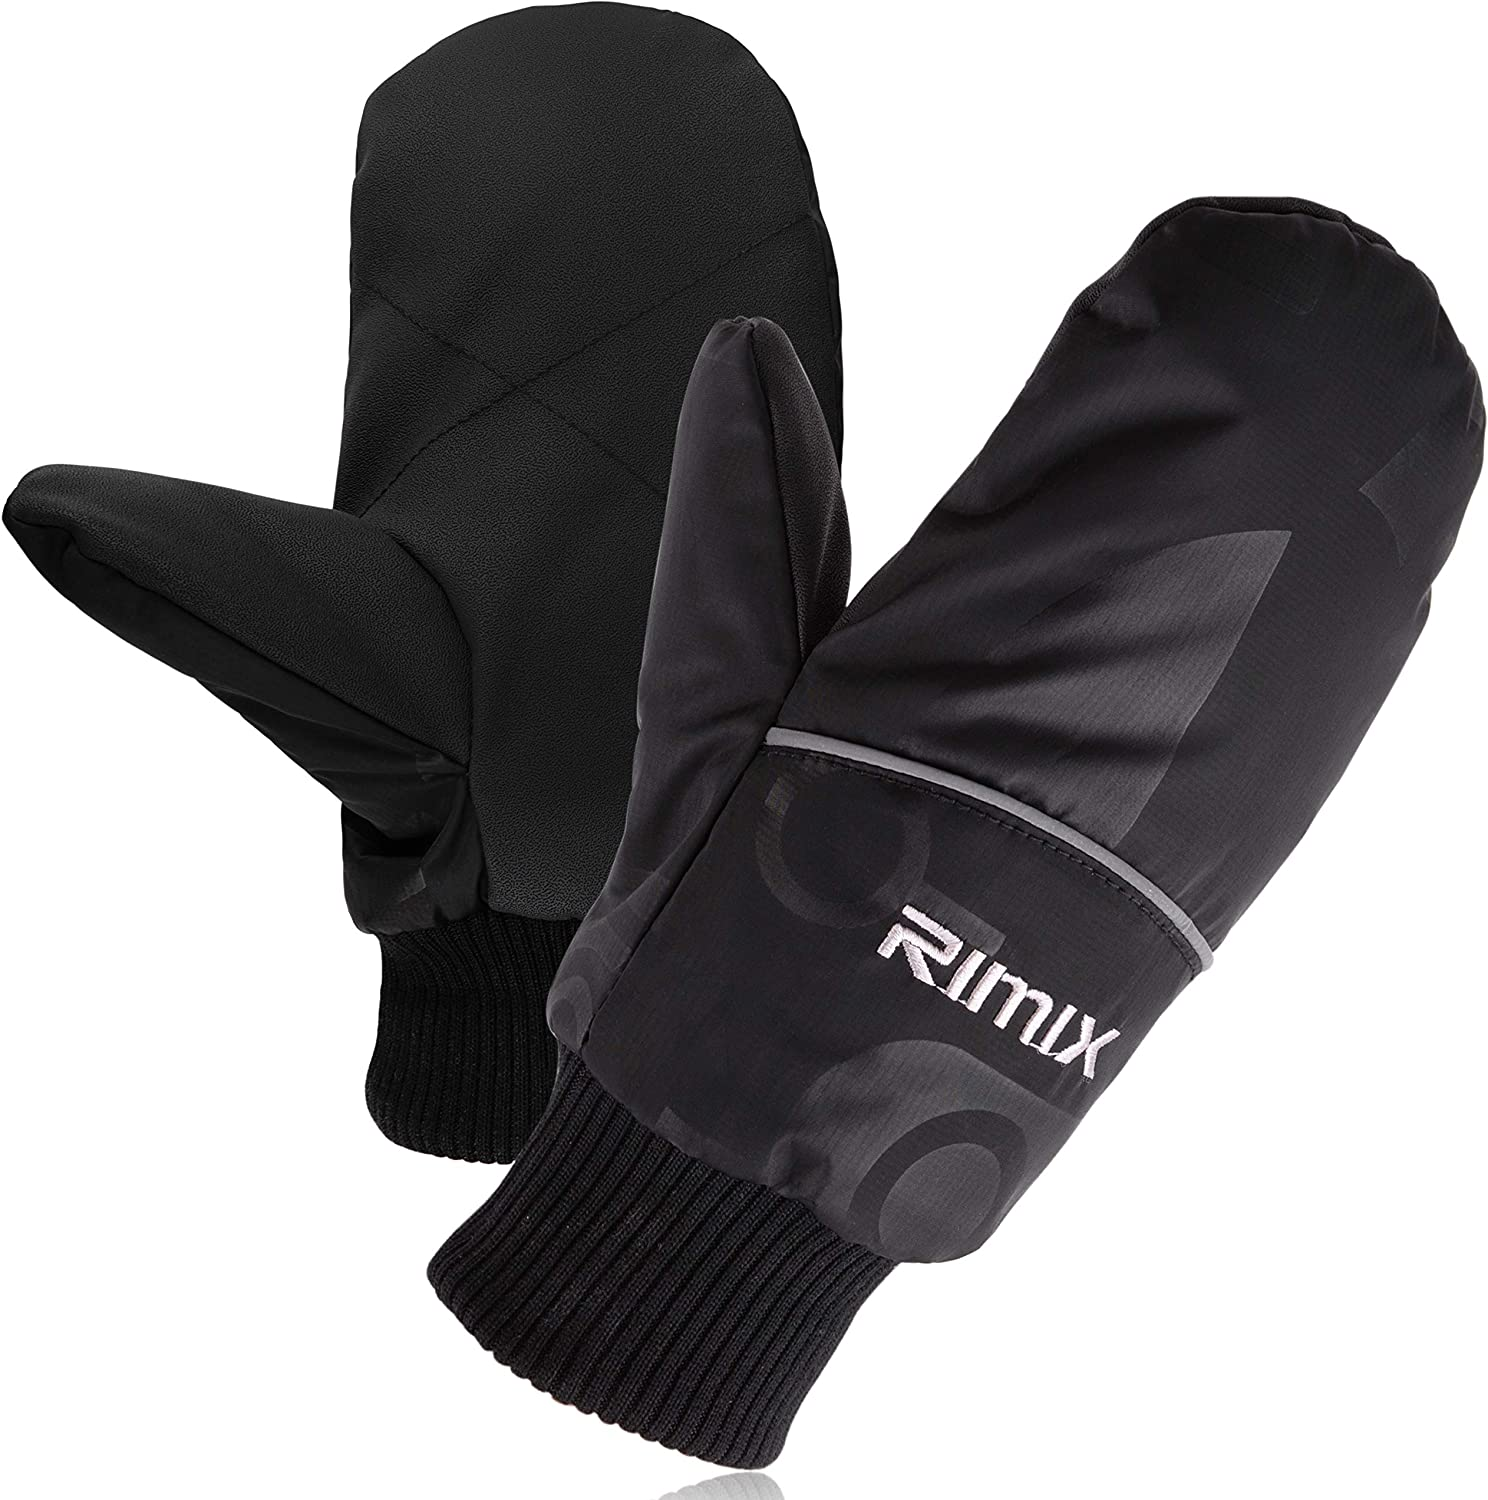 Winter Down Gloves for Men Women Waterproof Insulated Mittens with Finger Liners